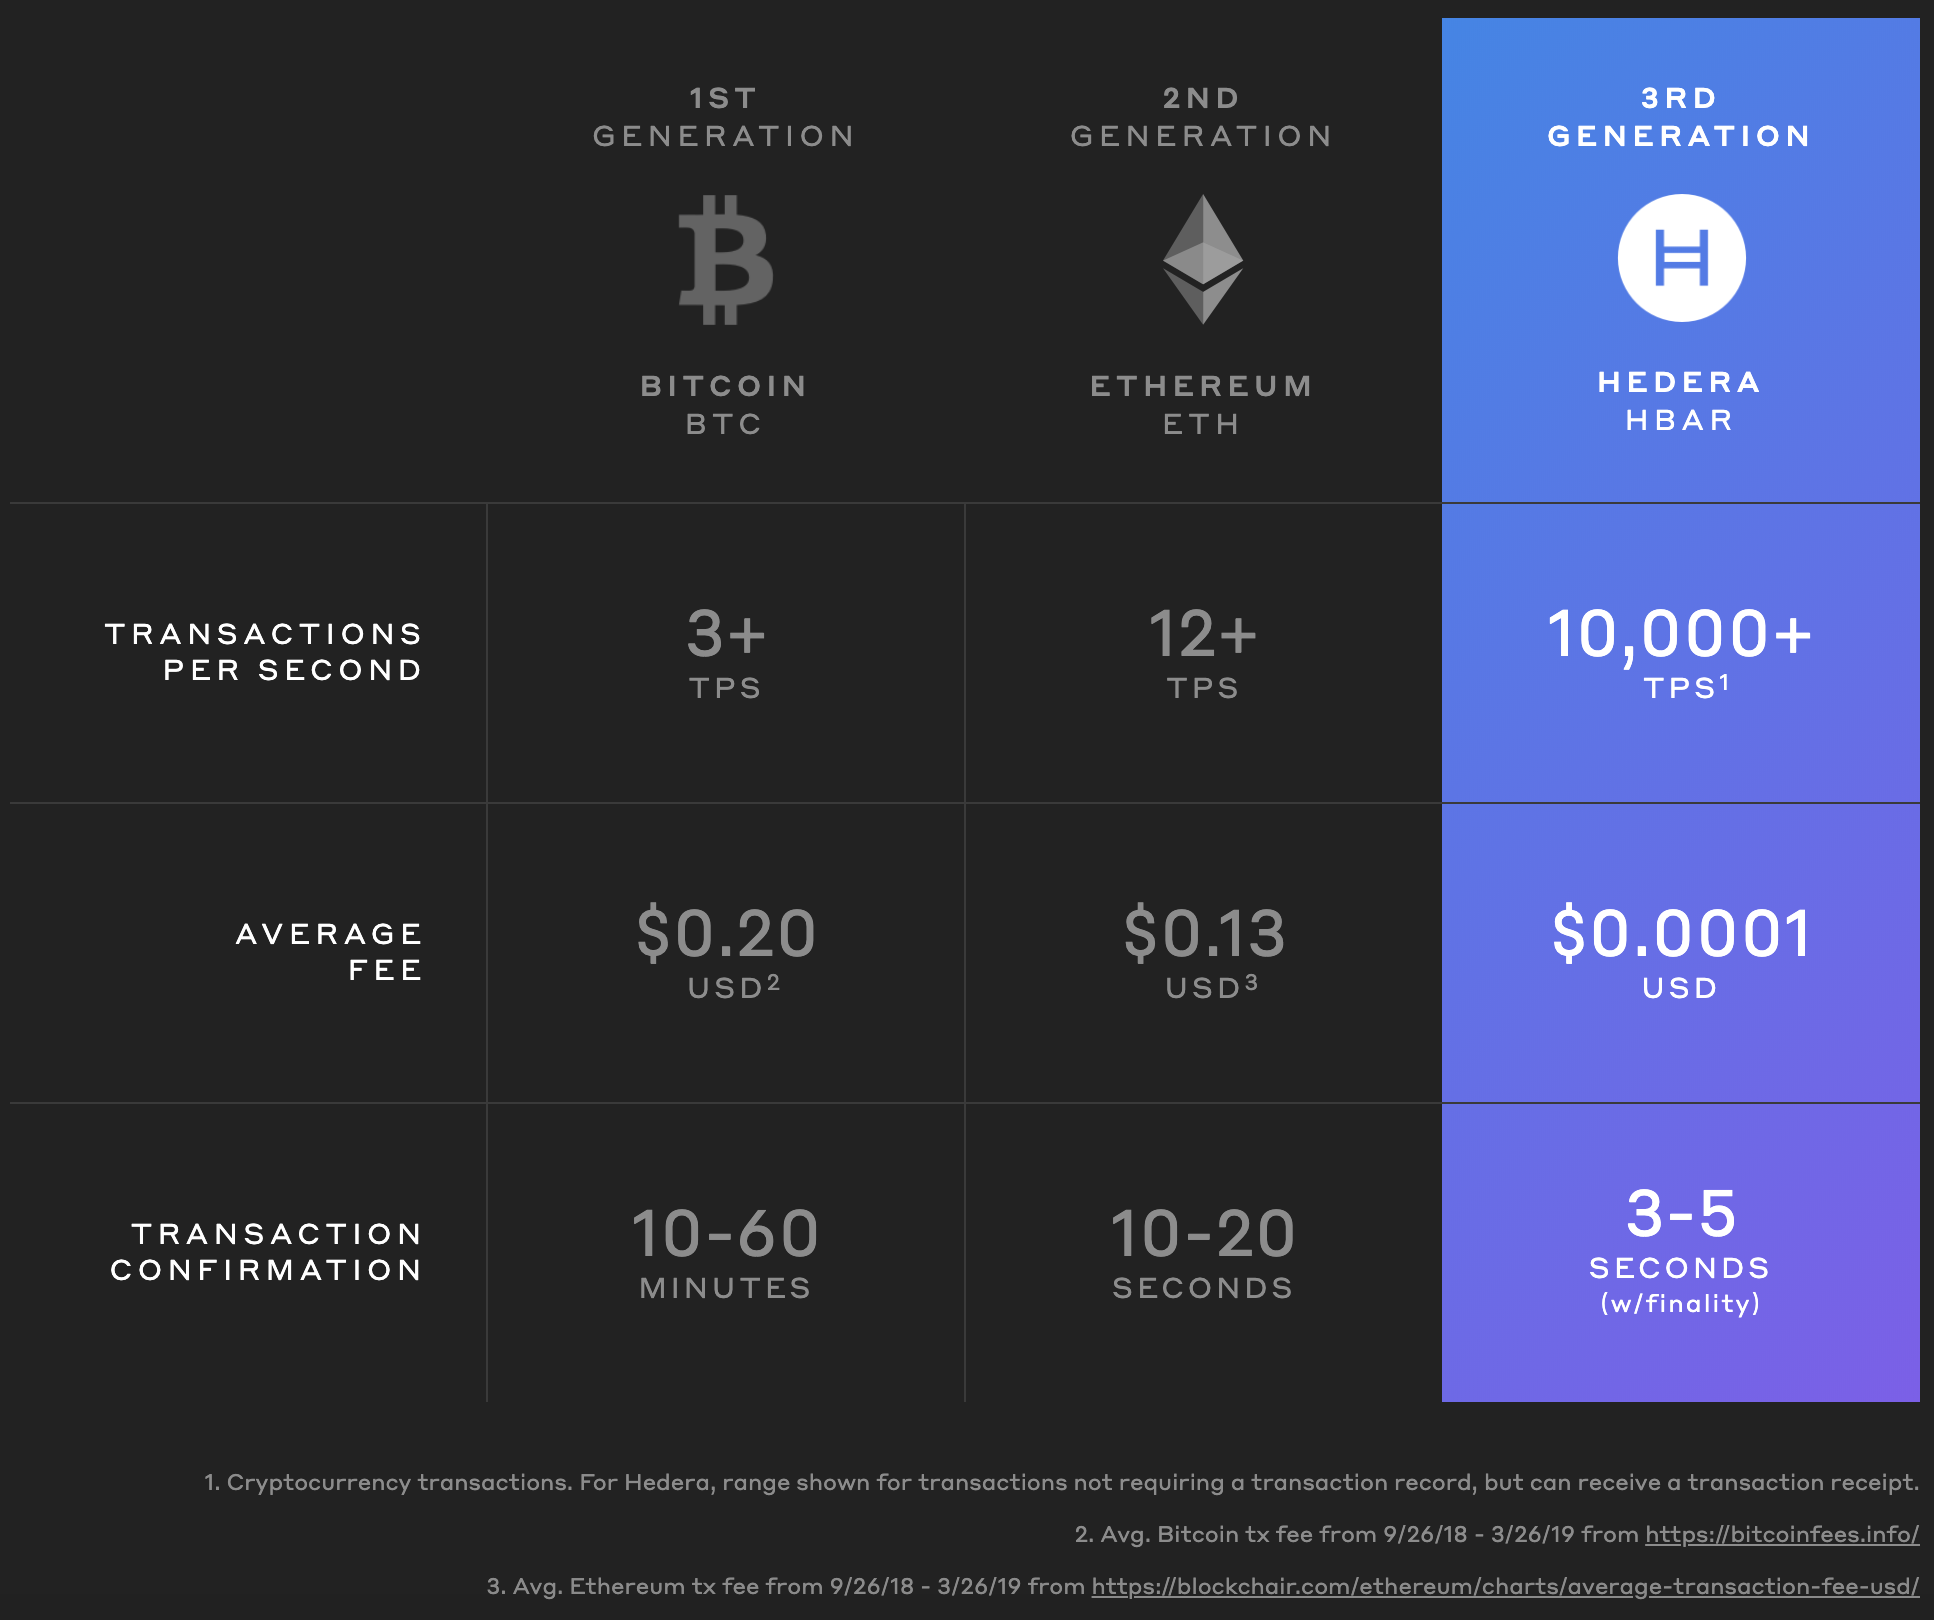 Hedera Hashgraph — Time for some FUD - Eric Wall - Medium